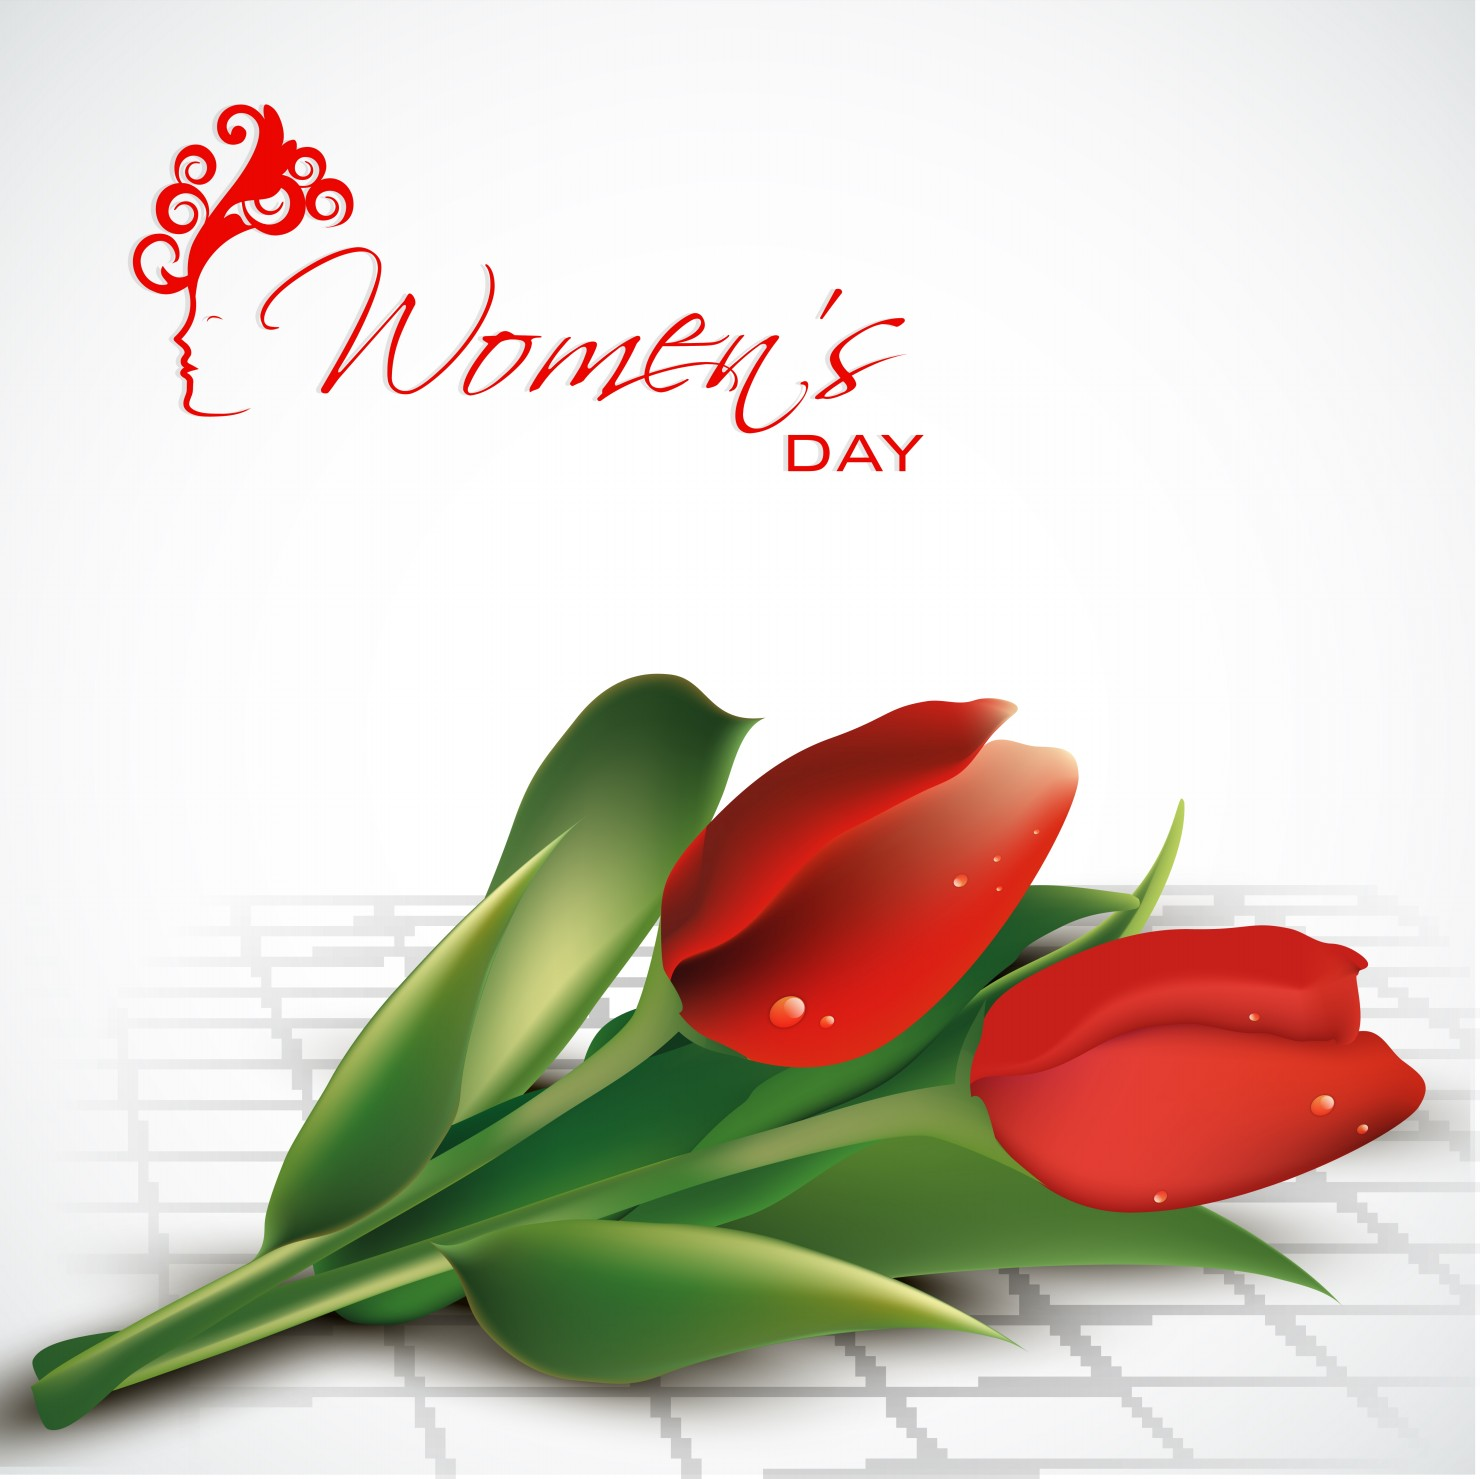 Womens Day Celebrations with Stylish Cards Images Wallpapers 1480x1479